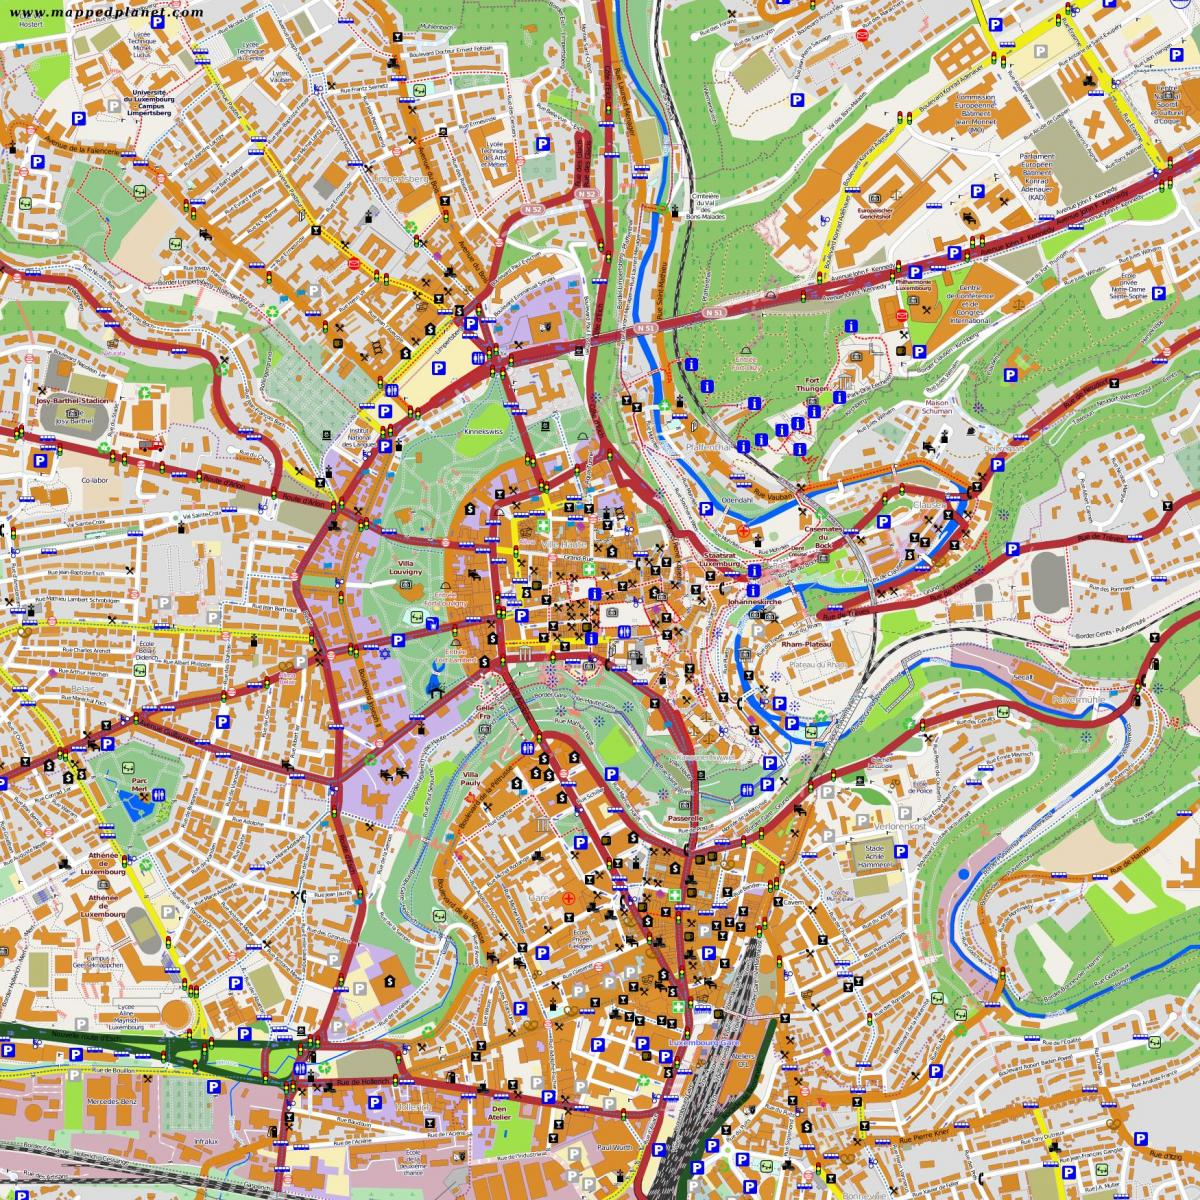 map of Luxembourg city centre